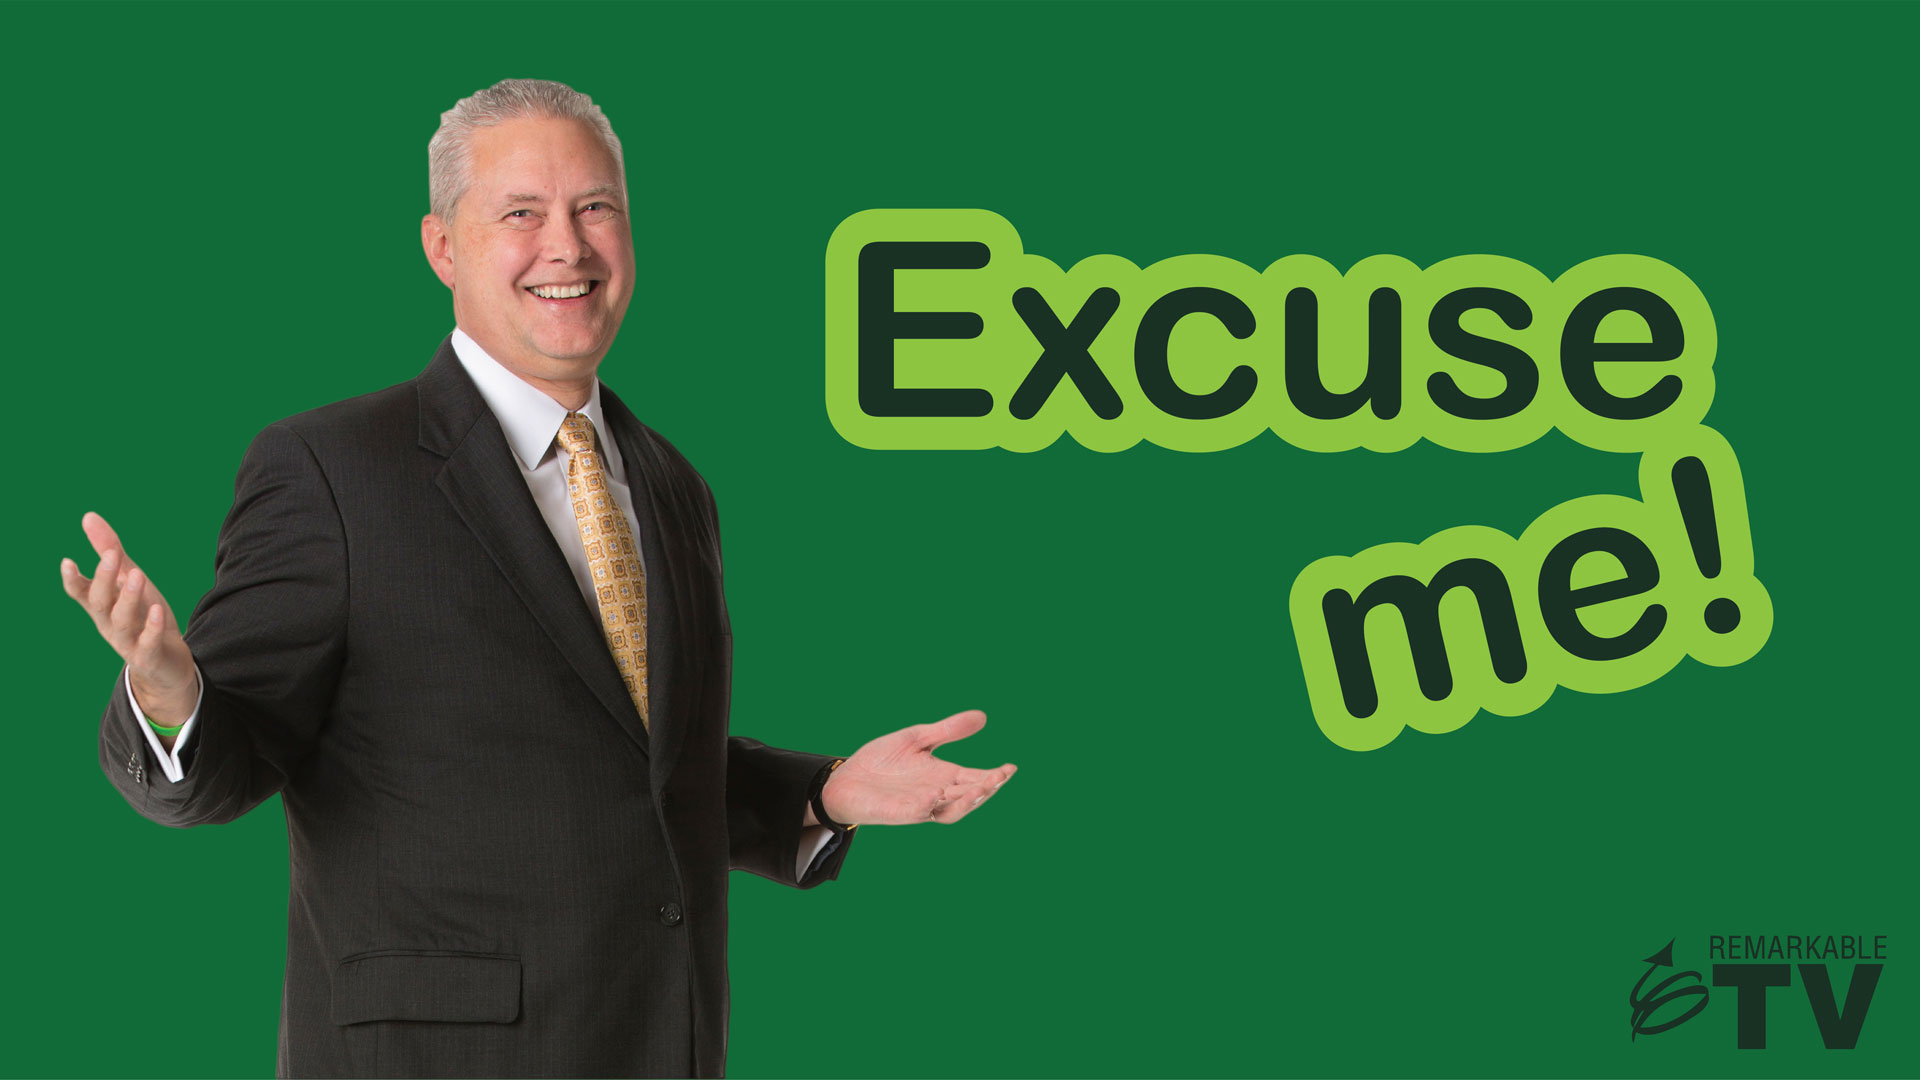 Excuse Me! A Remarkable TV episode with Kevin Eikenberry